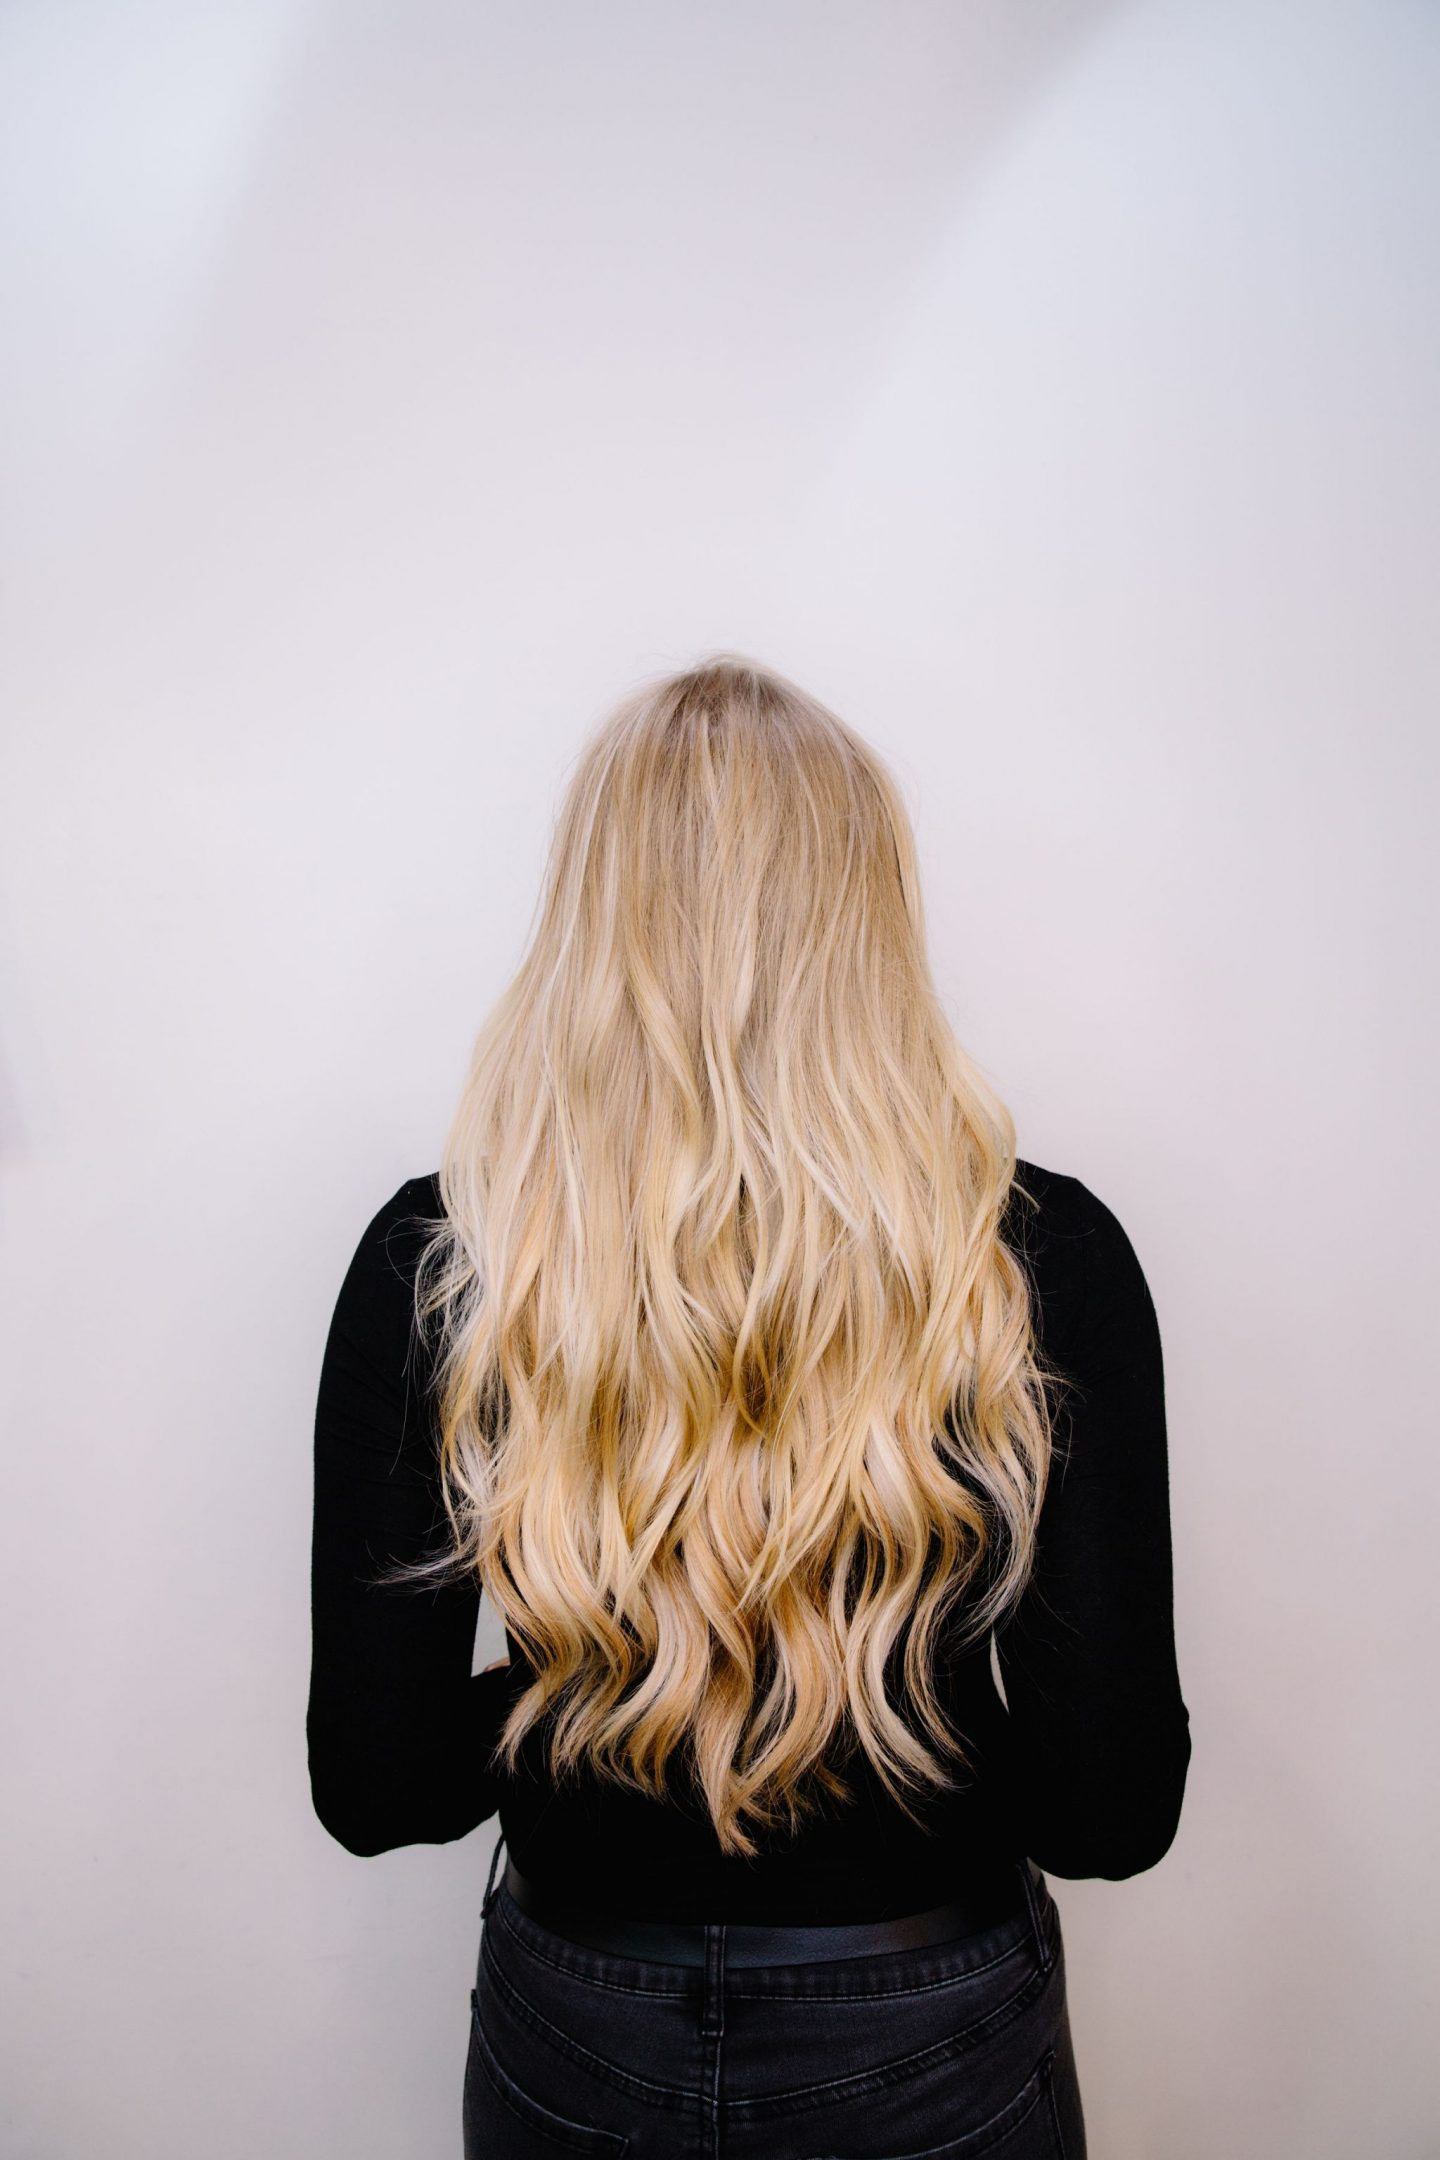 Hair Extensions And Why I Love Them